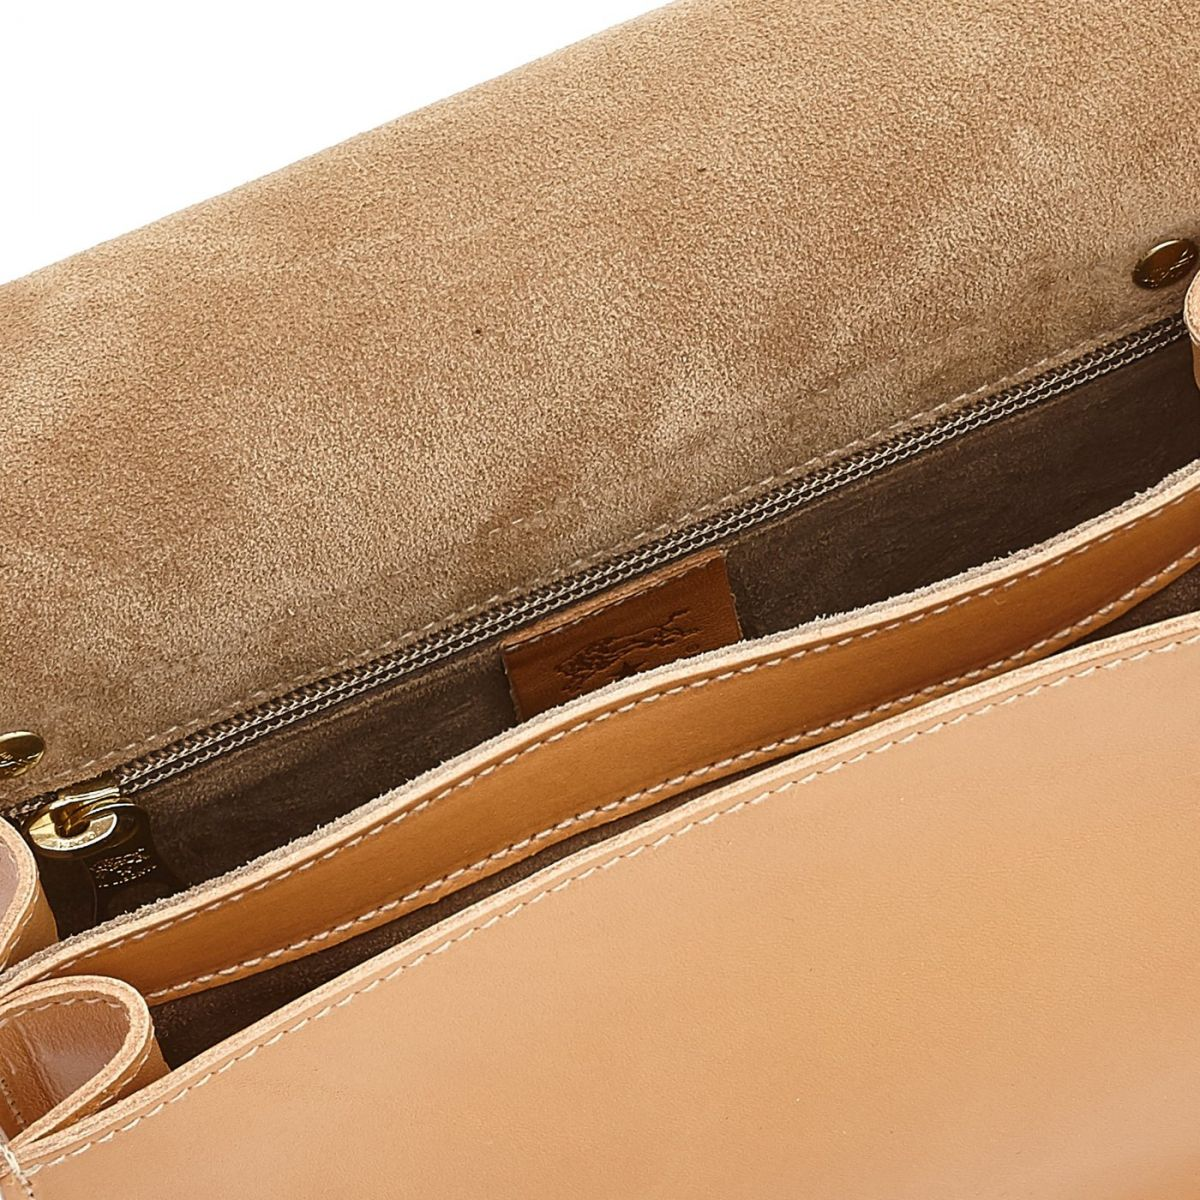 Women's Crossbody Bag Salina in Cowhide Leather BCR170 color Natural | Details